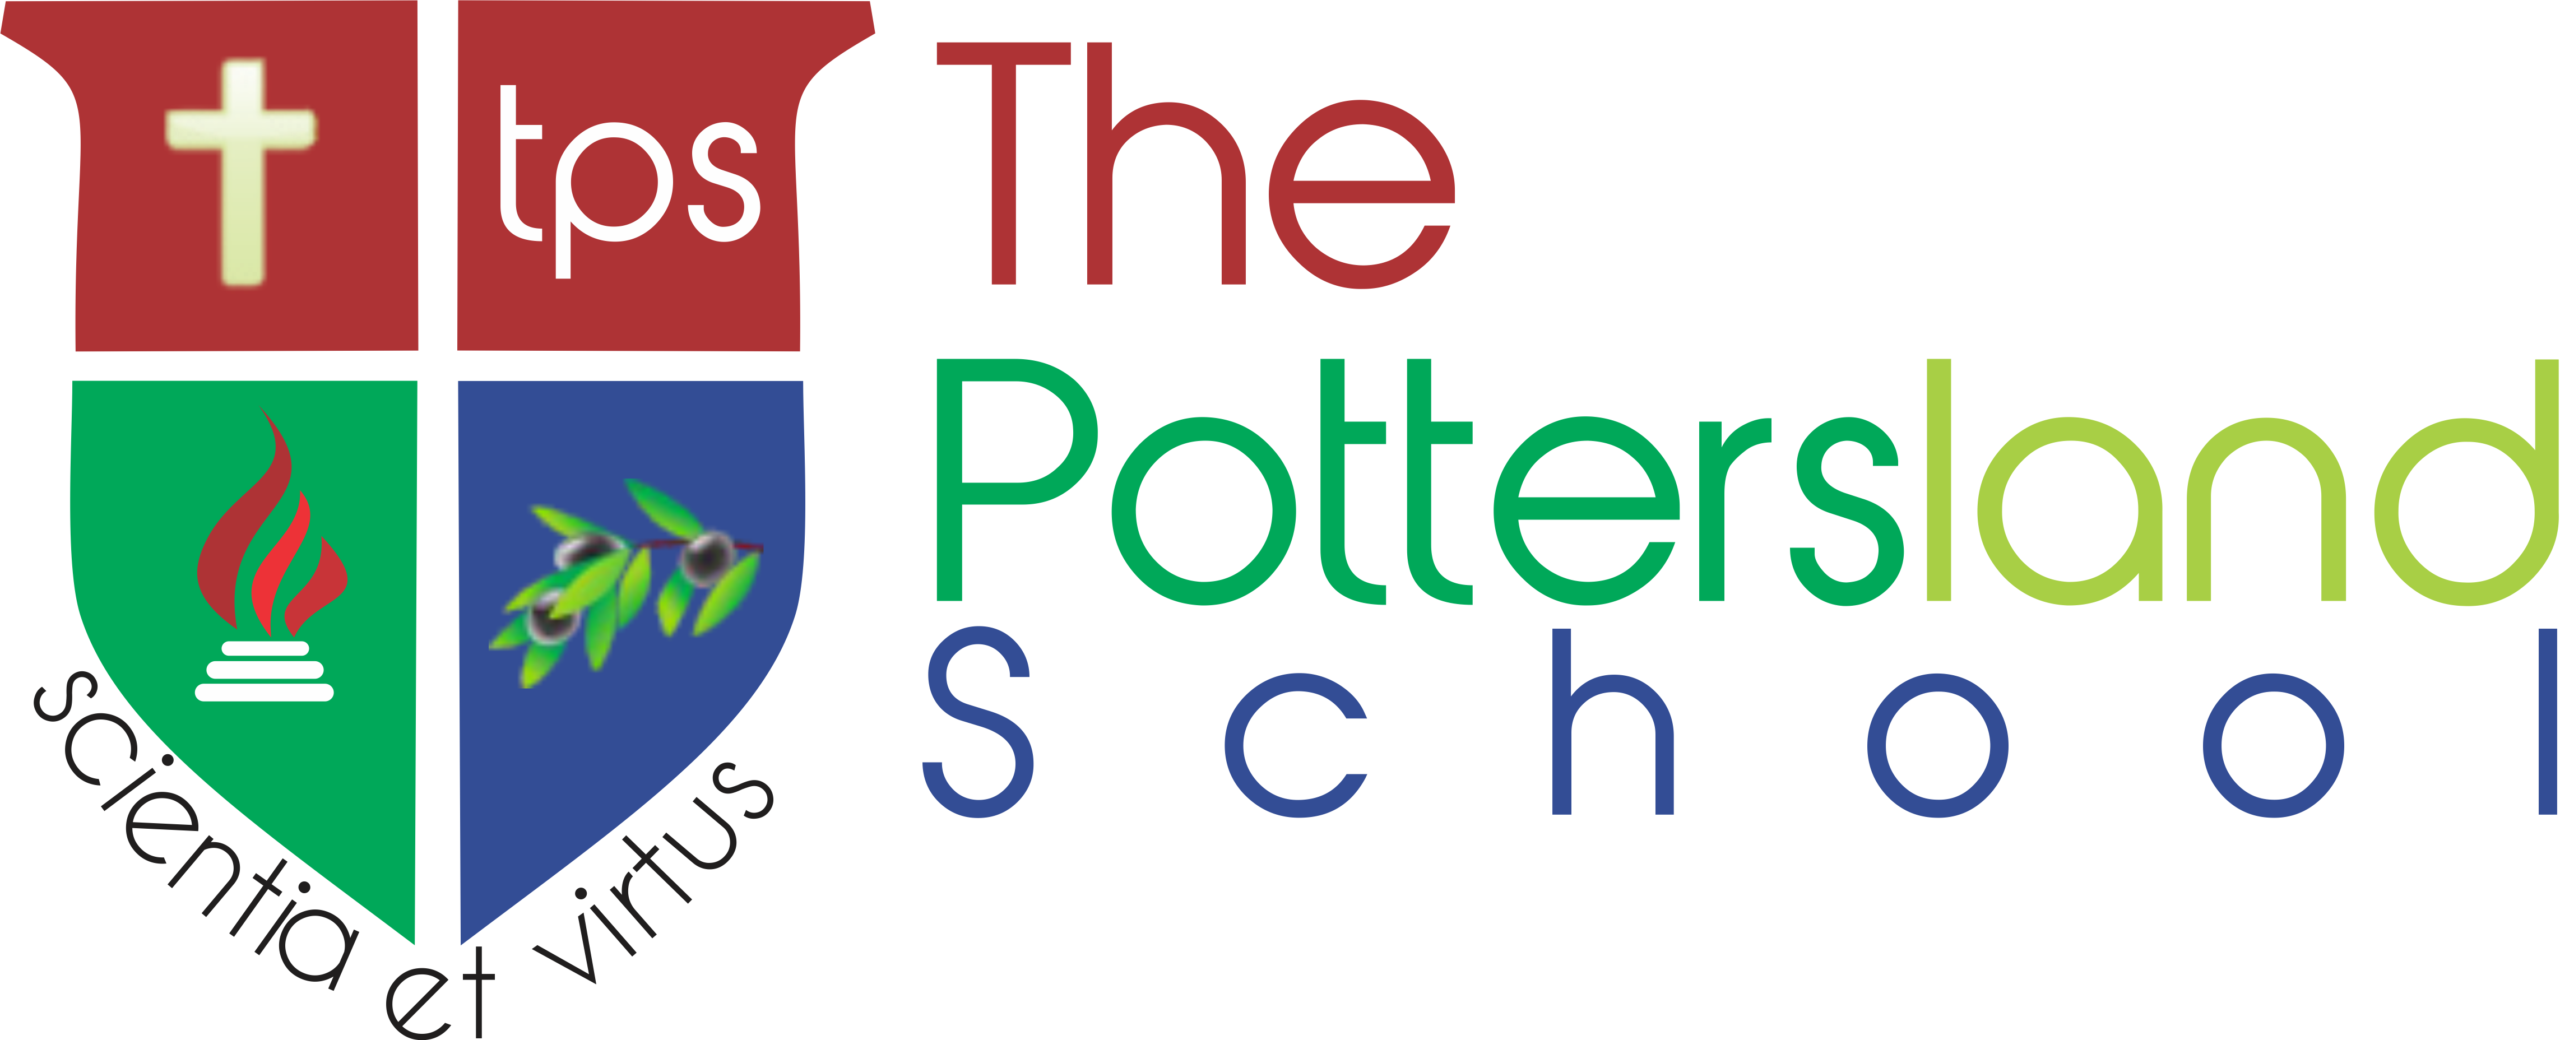 The pottersland school